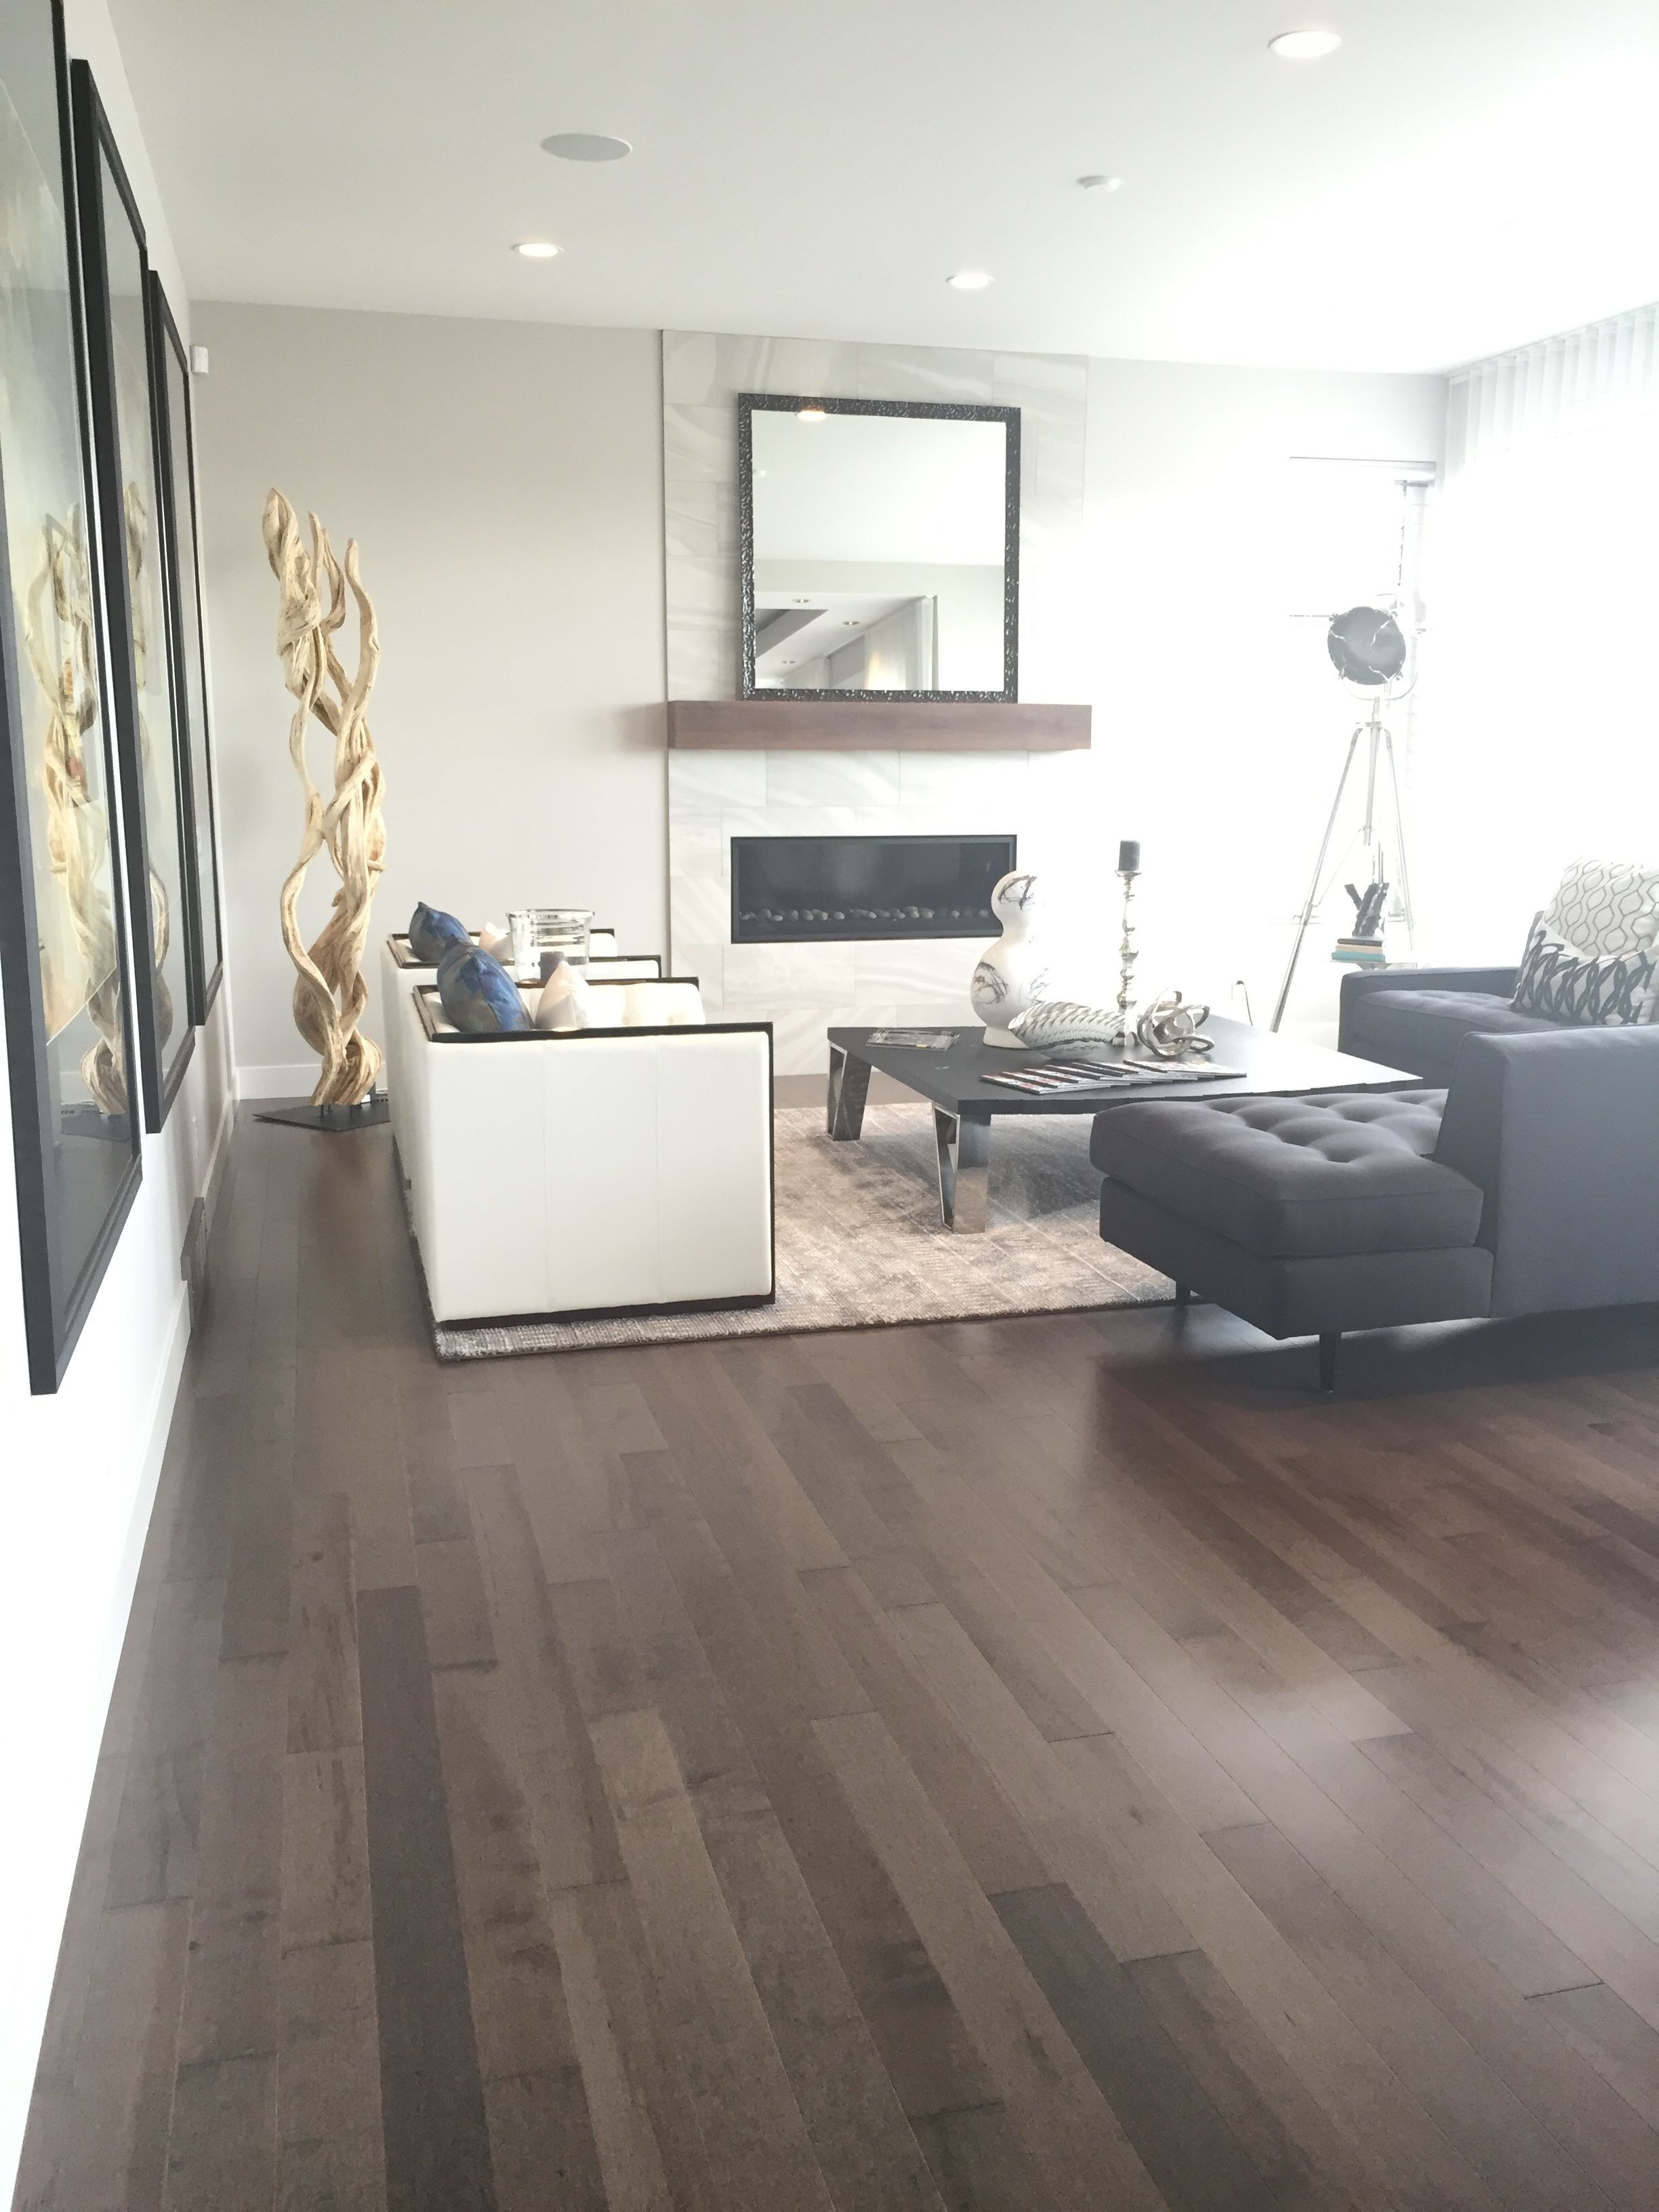 maple walnut hardwood flooring of smoky grey essential hard maple tradition lauzon hardwood inside beautiful living room from the cantata showhome featuring lauzons smokey grey hard maple hardwood flooring from the essential collection